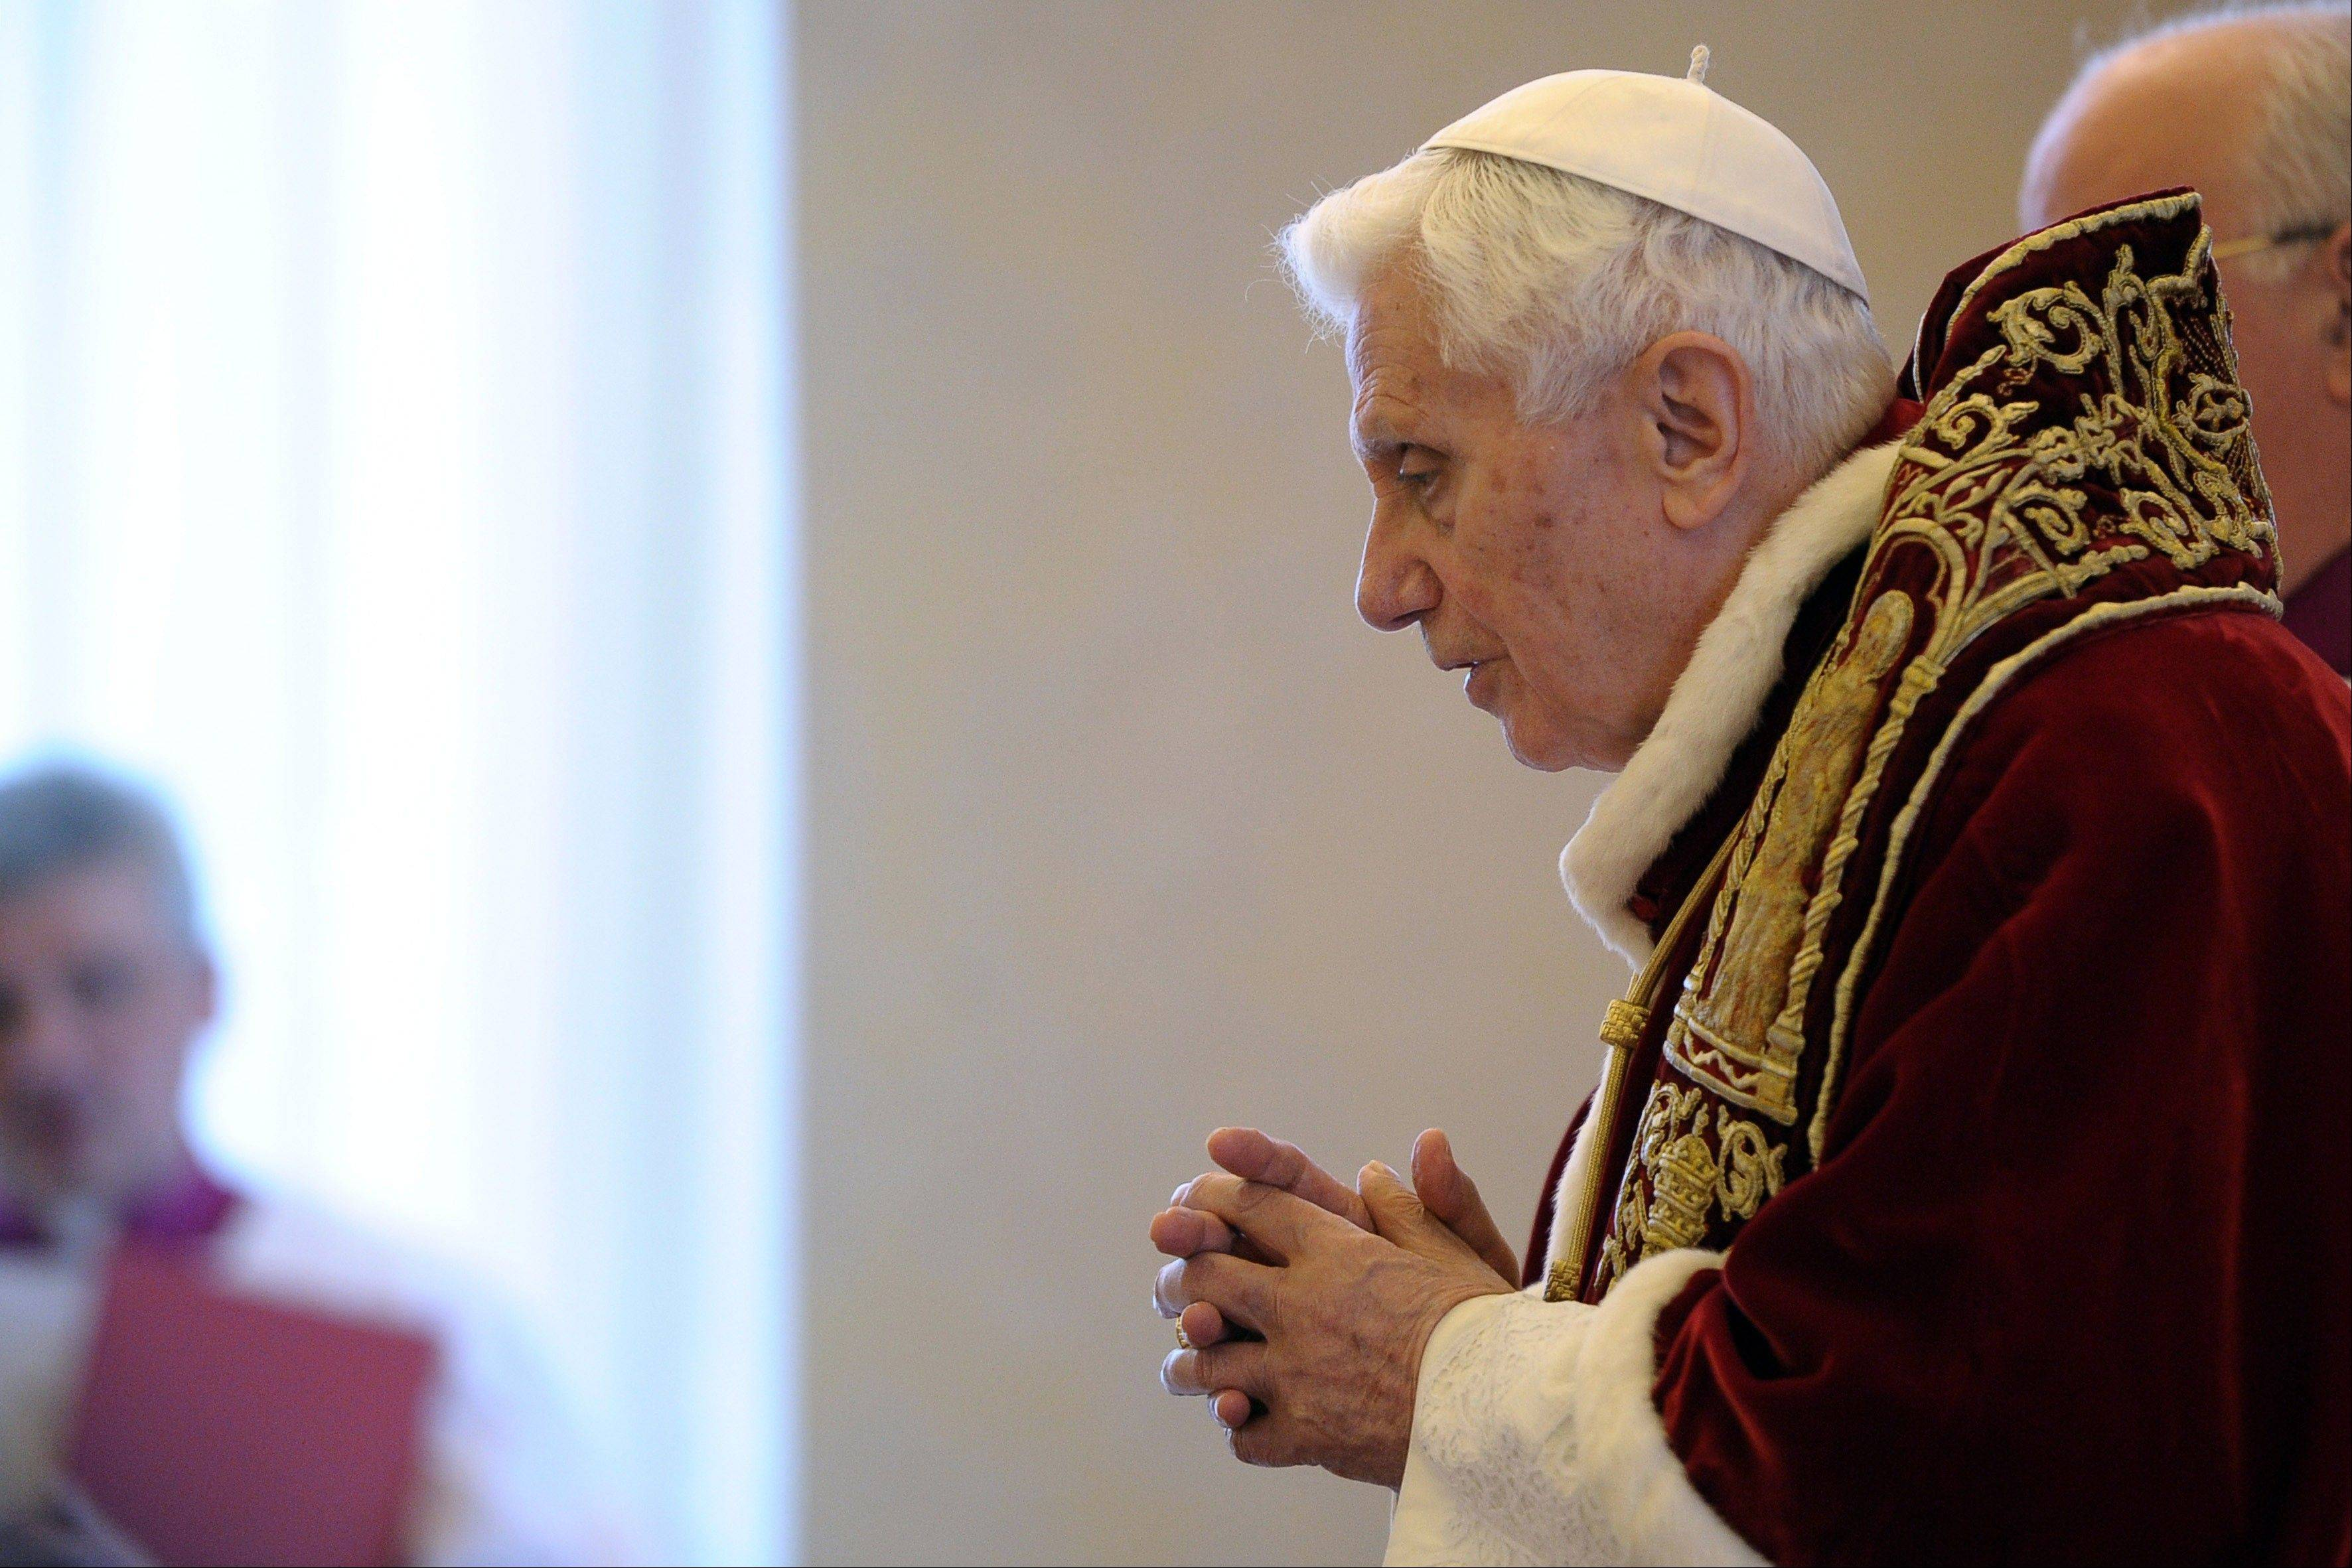 Pope Benedict XVI delivers his message Monday during a meeting of cardinals at the Vatican. Benedict XVI announced Monday that he would resign Feb. 28 -- the first pontiff to do so in nearly 600 years. The decision sets the stage for a conclave to elect a new pope before the end of March.